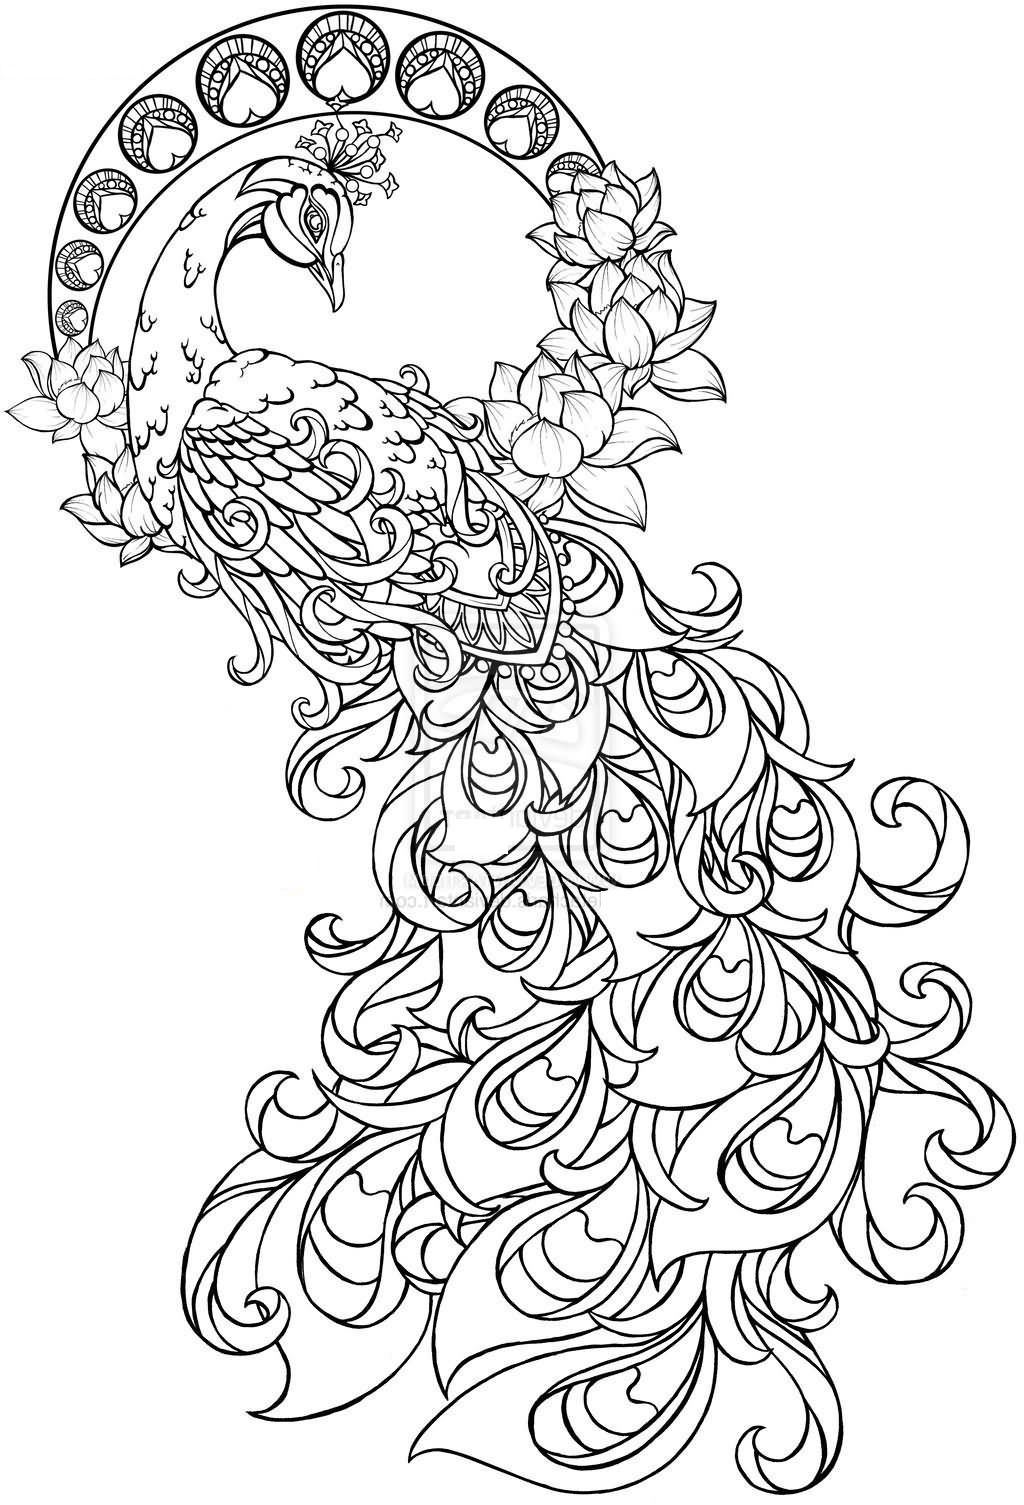 Beautiful Peacock Coloring Pages For Adults Peacock Coloring